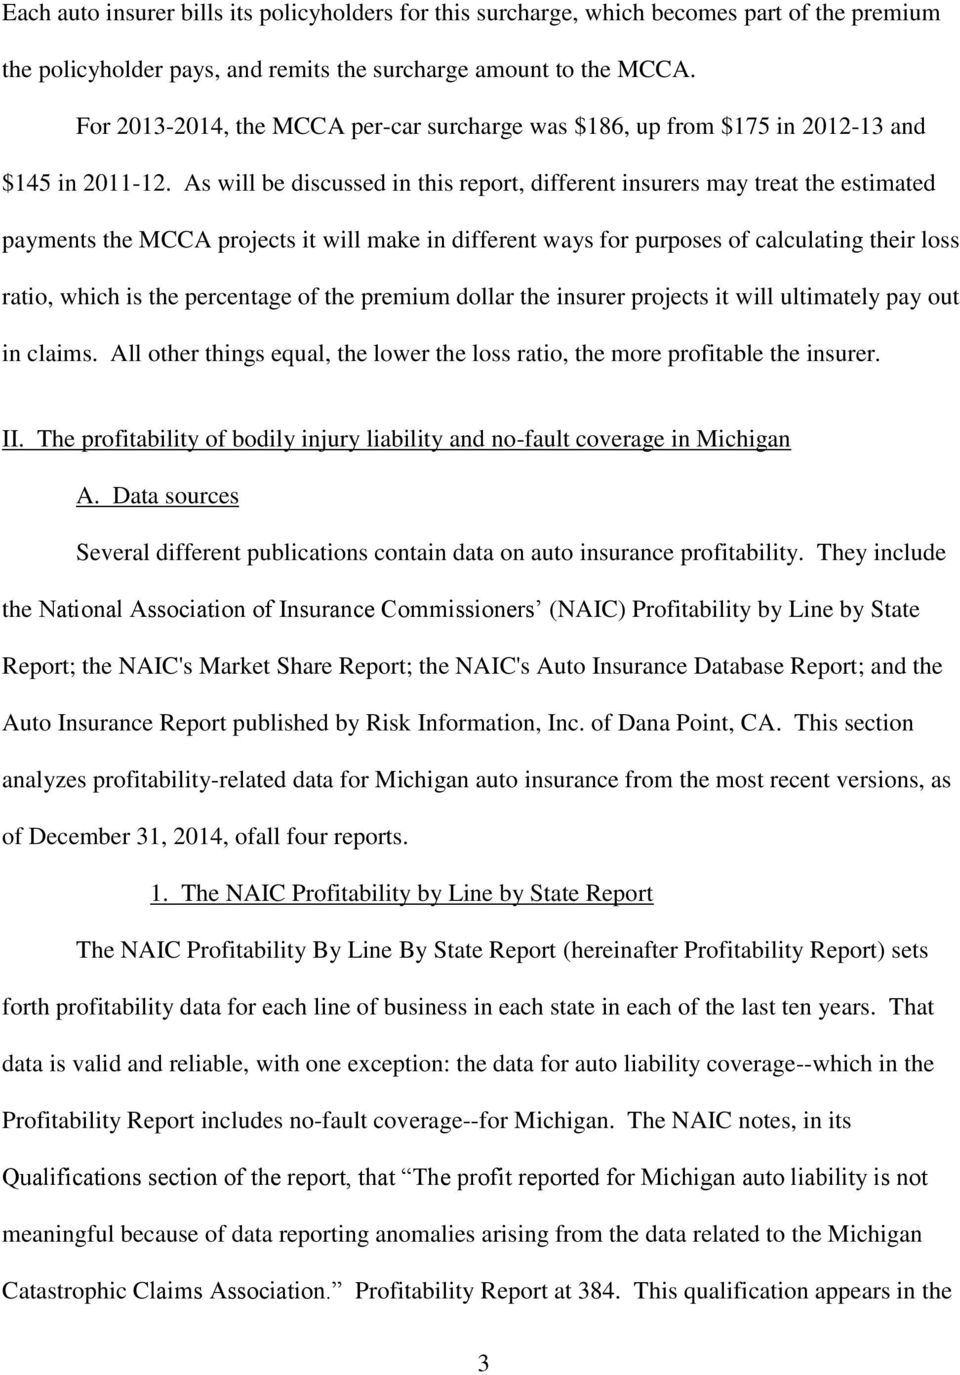 As will be discussed in this report, different insurers may treat the estimated payments the MCCA projects it will make in different ways for purposes of calculating their loss ratio, which is the